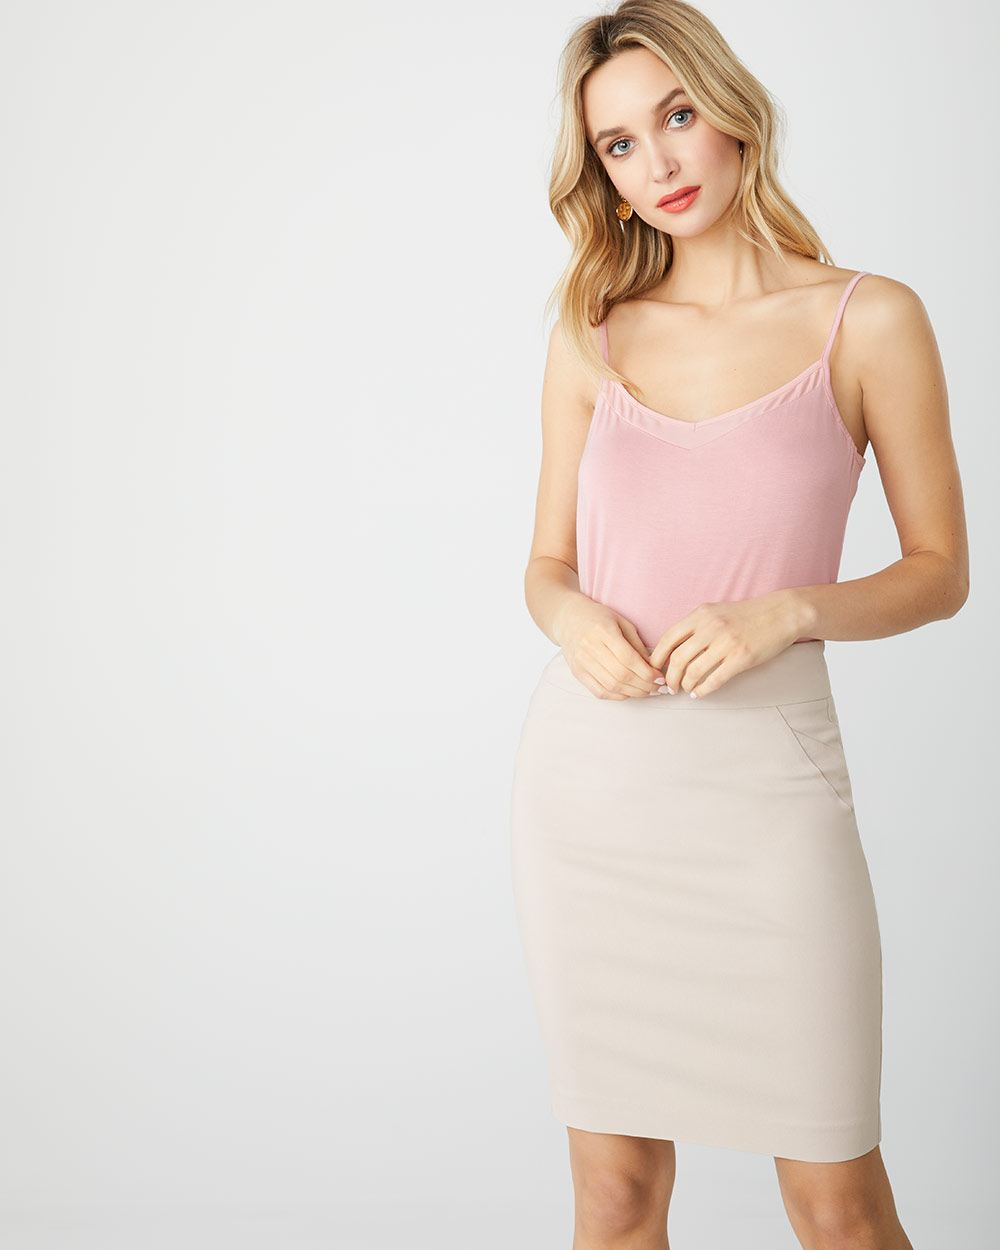 Satin-trimmed Cami with Adjustable Straps